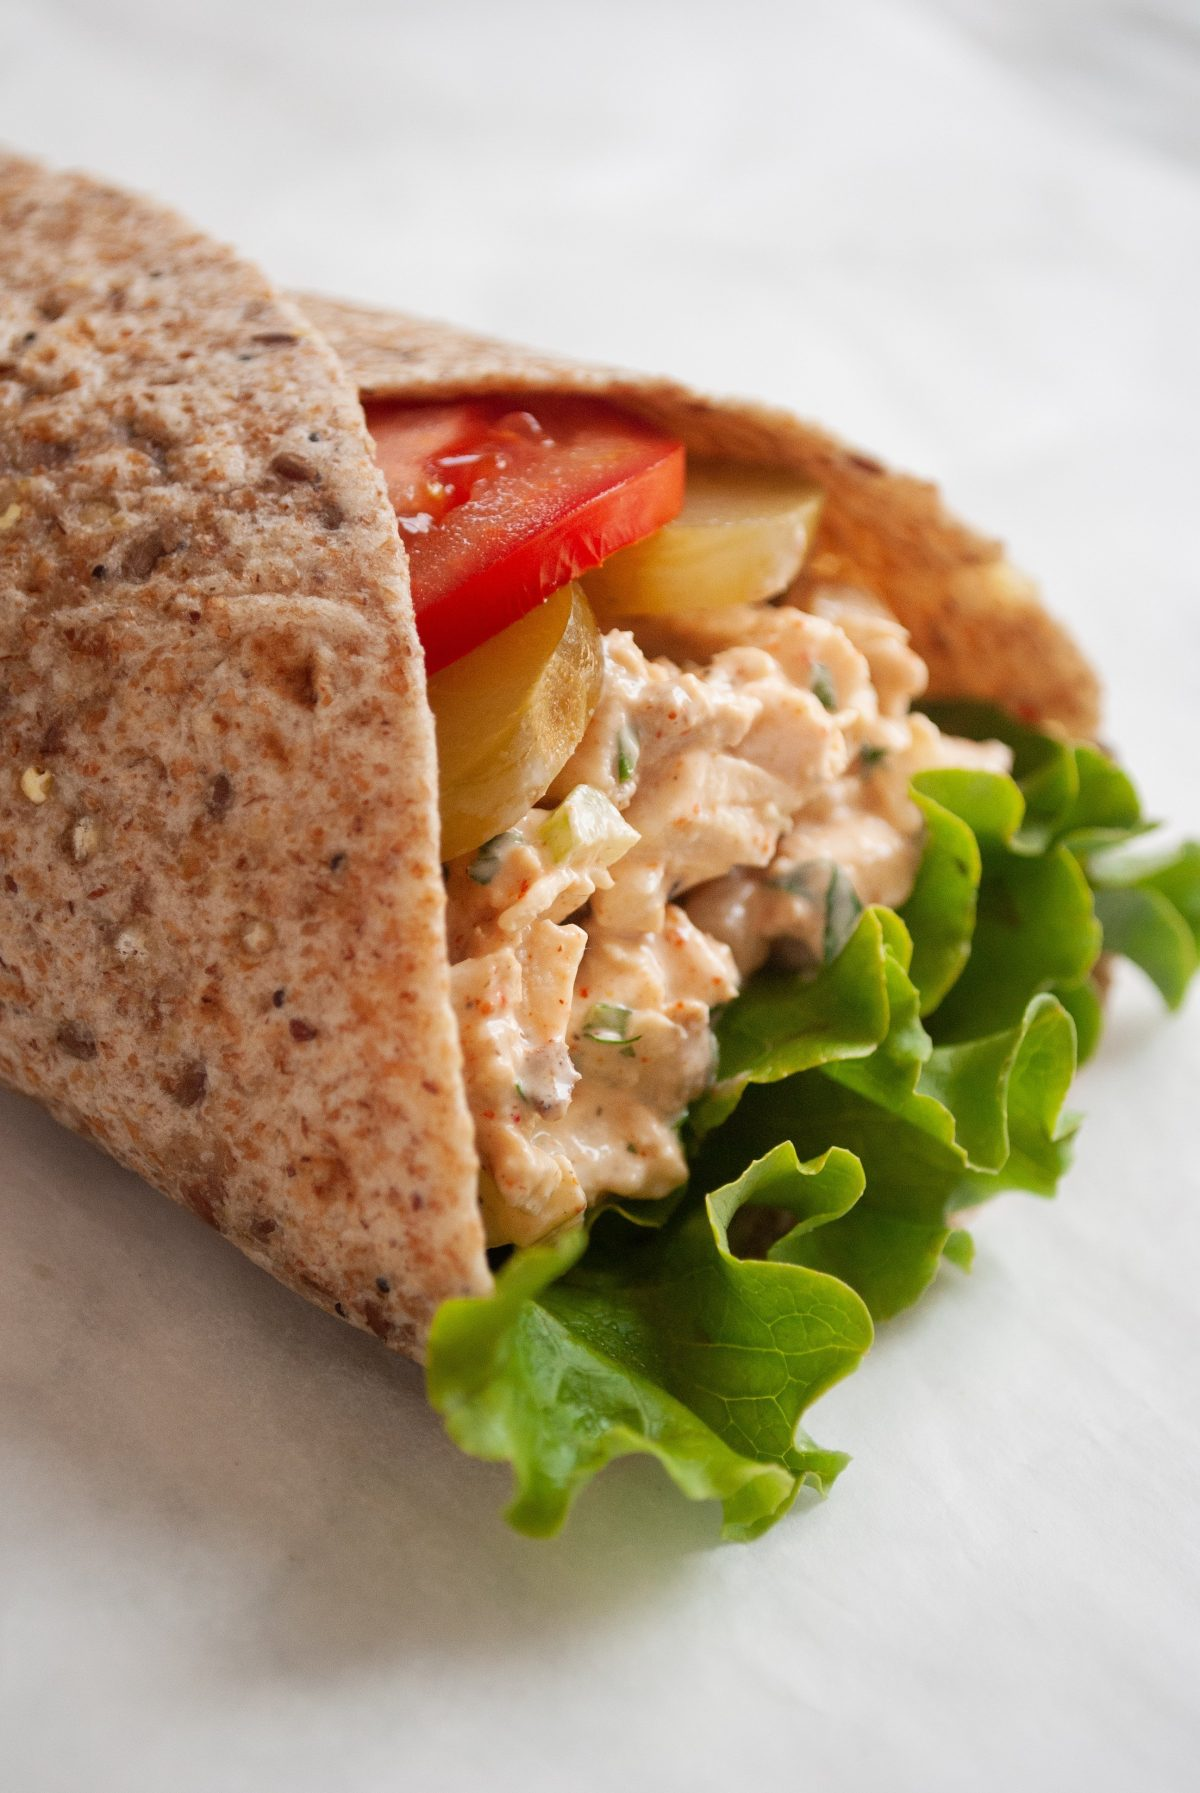 piri piri chicken salad with lettuce, tomato and pickle in a whole wheat wrap